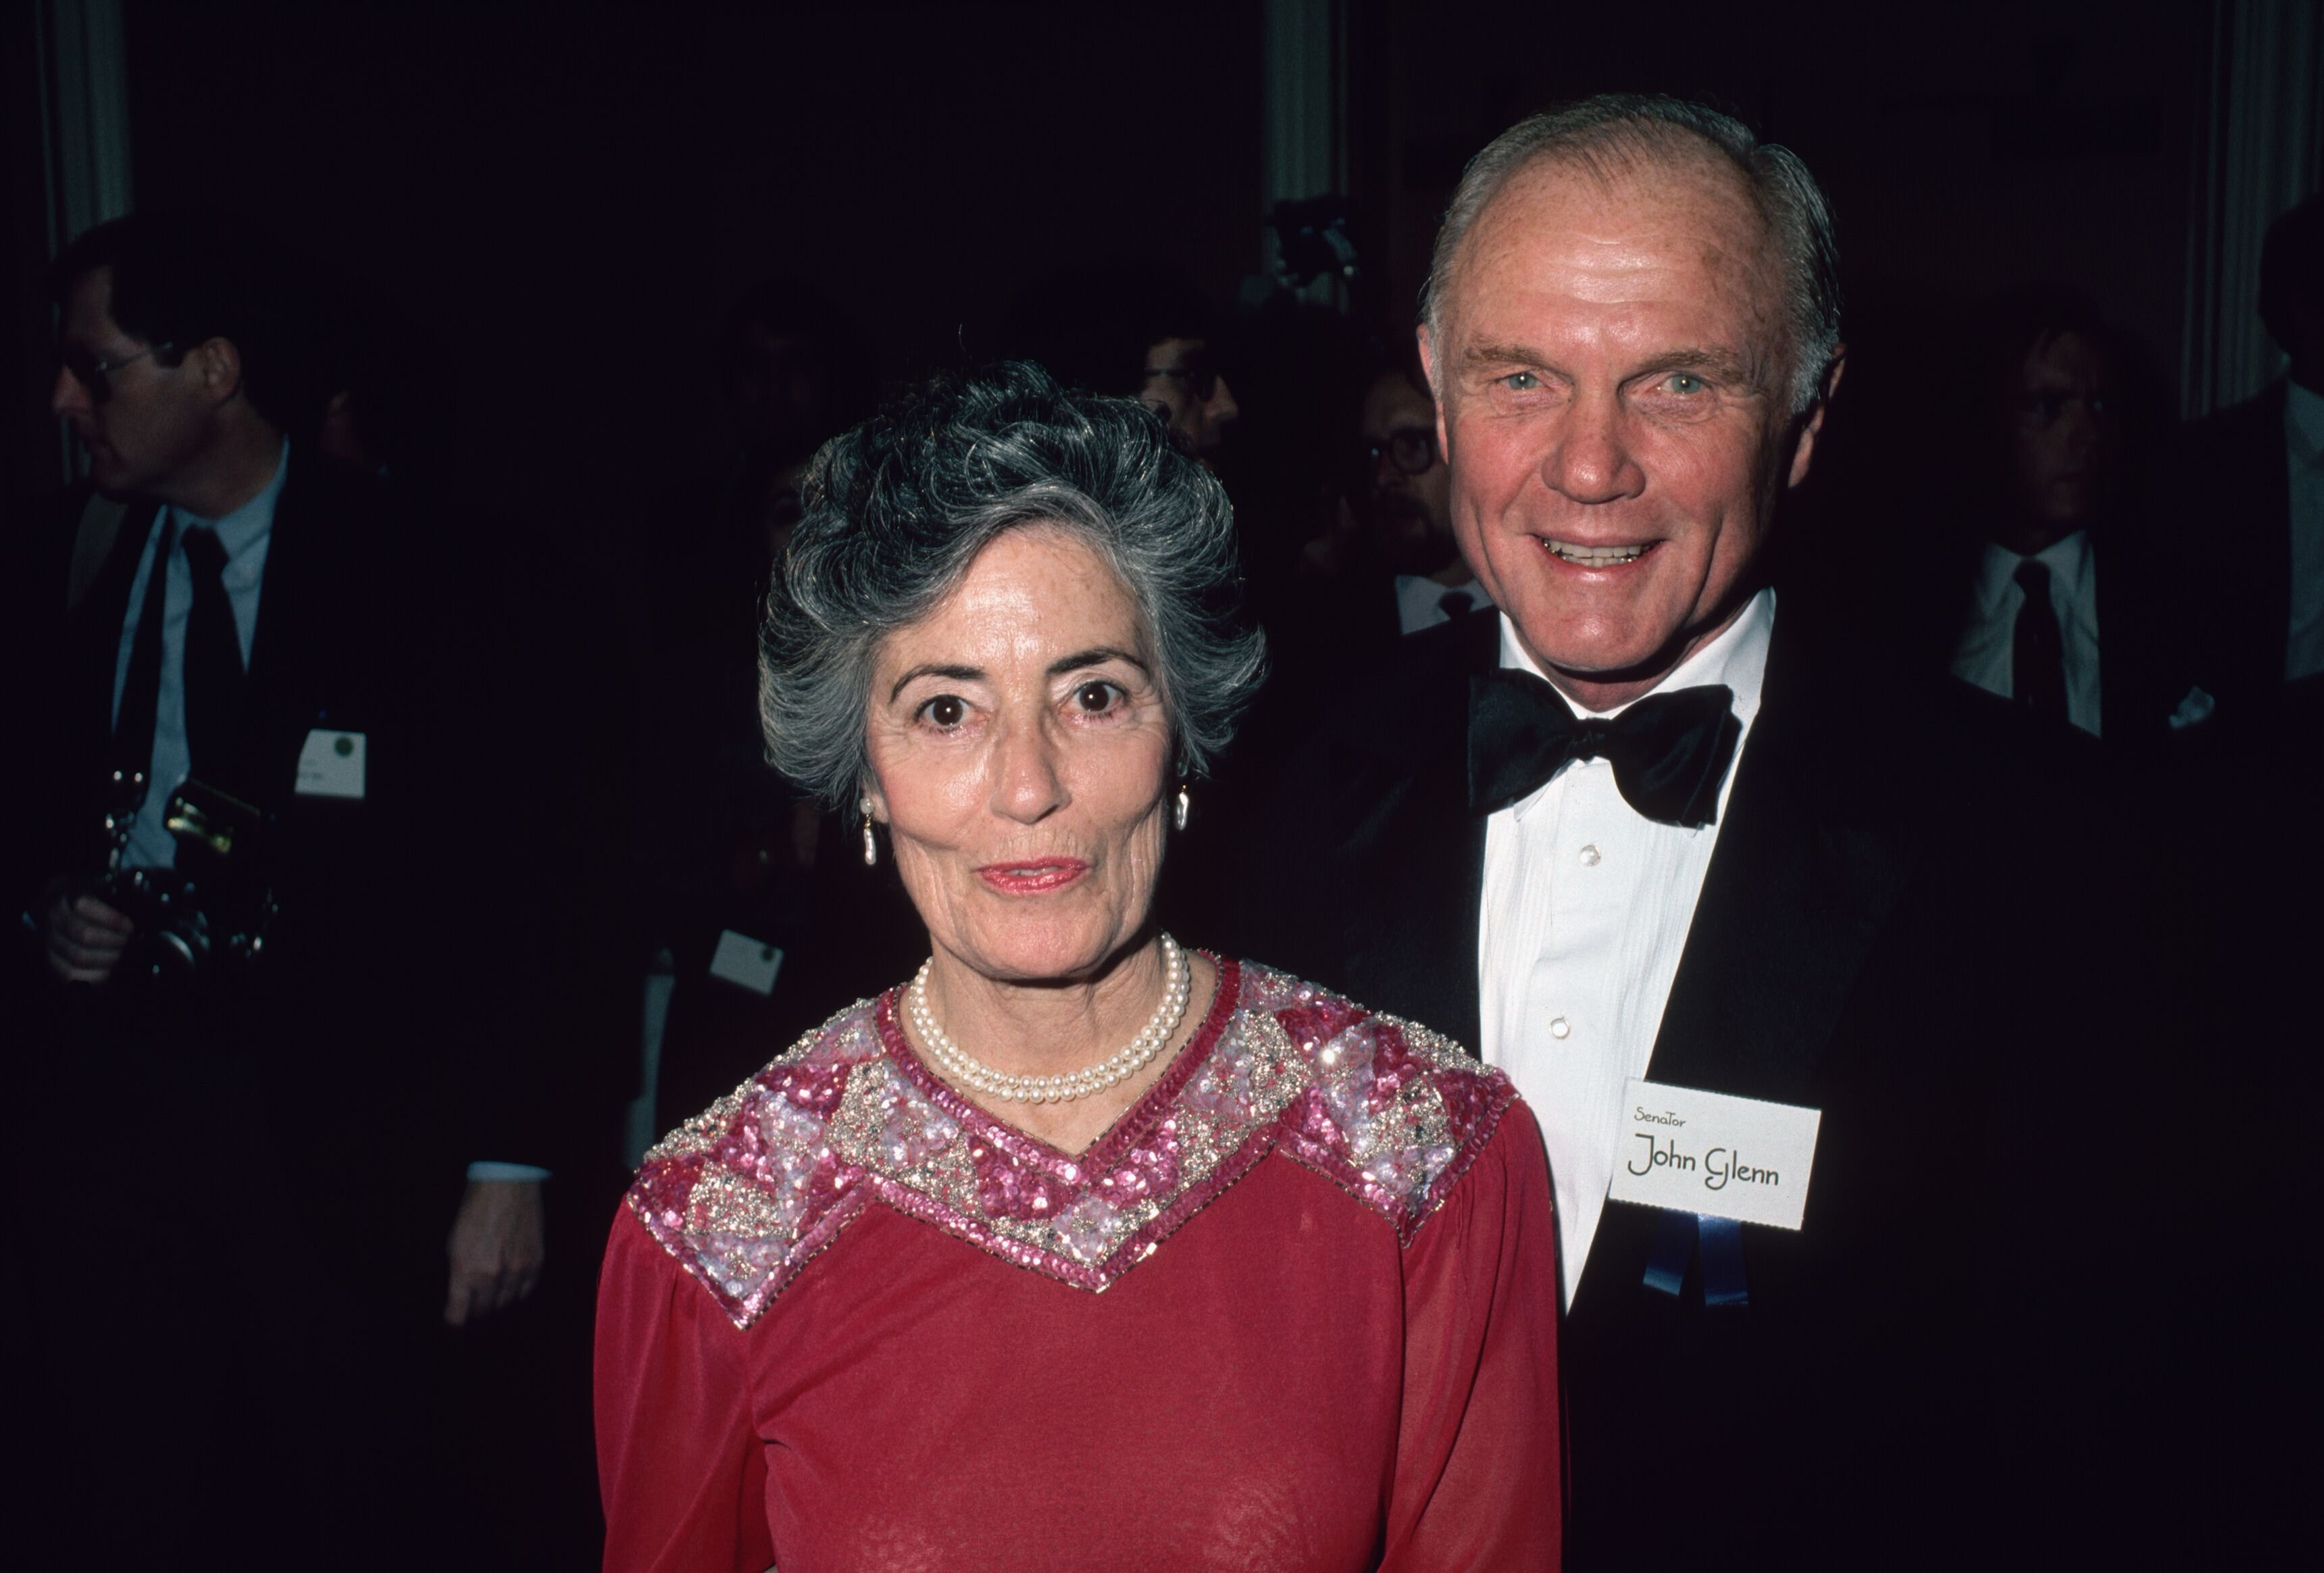 John Glenn Standing with His Wife, Annie Glenn for a portrait on December 01, 1983 | Photo: Getty Images